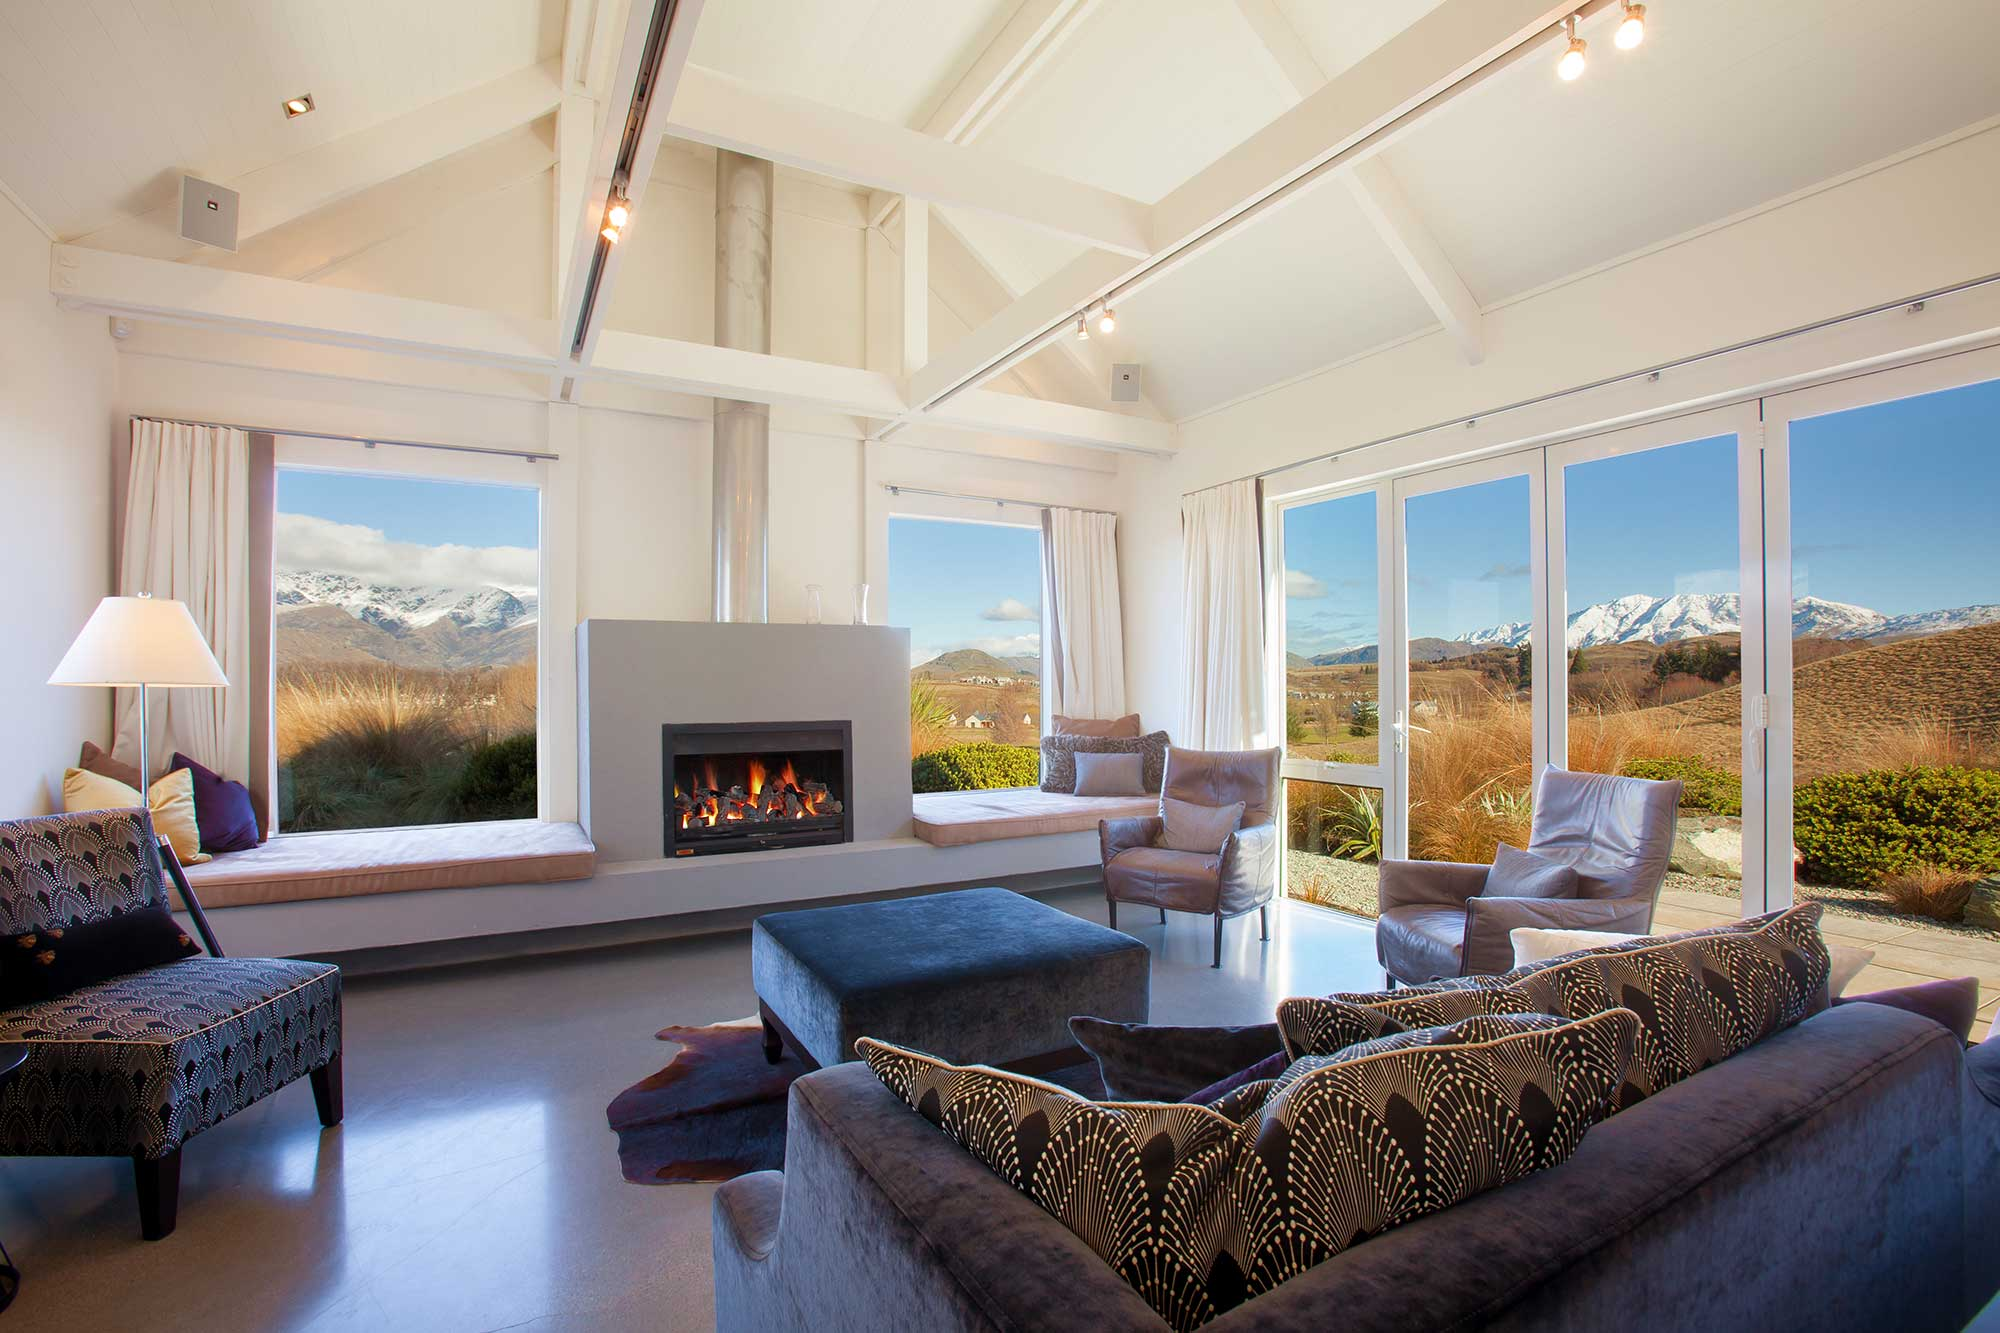 millbrook-resort-queenstown-accommodation-fairway-homes-pagegallery.jpg